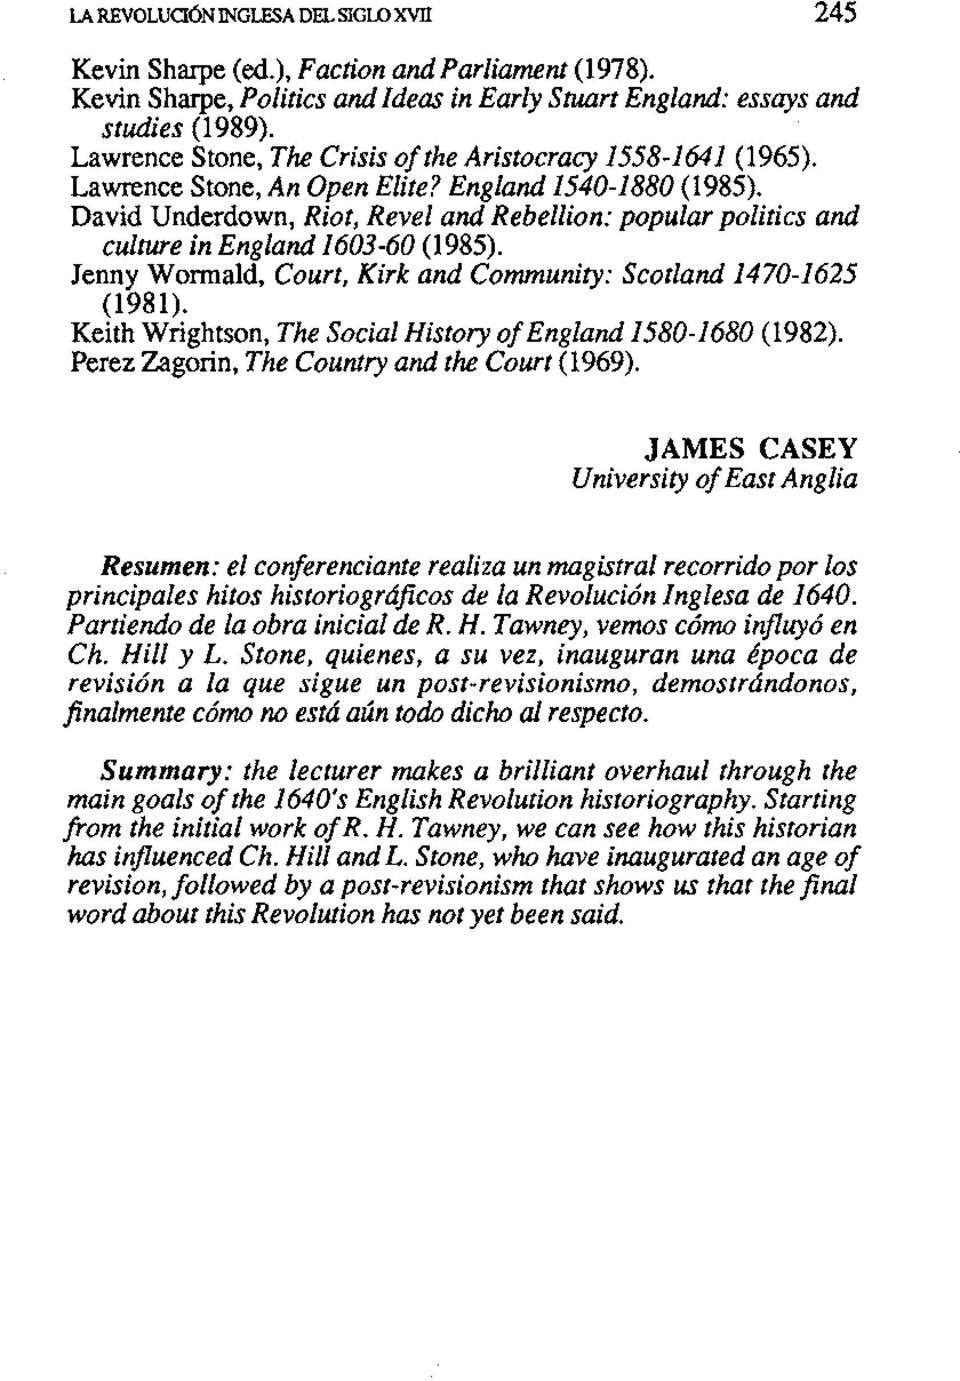 David Underdown, Riot, Revel and Rebellion: popular politics and culture in England 1603-60 (1985). Jenny Womald, Court, Kirk and Community: Scotland 1470-1625 (1981).